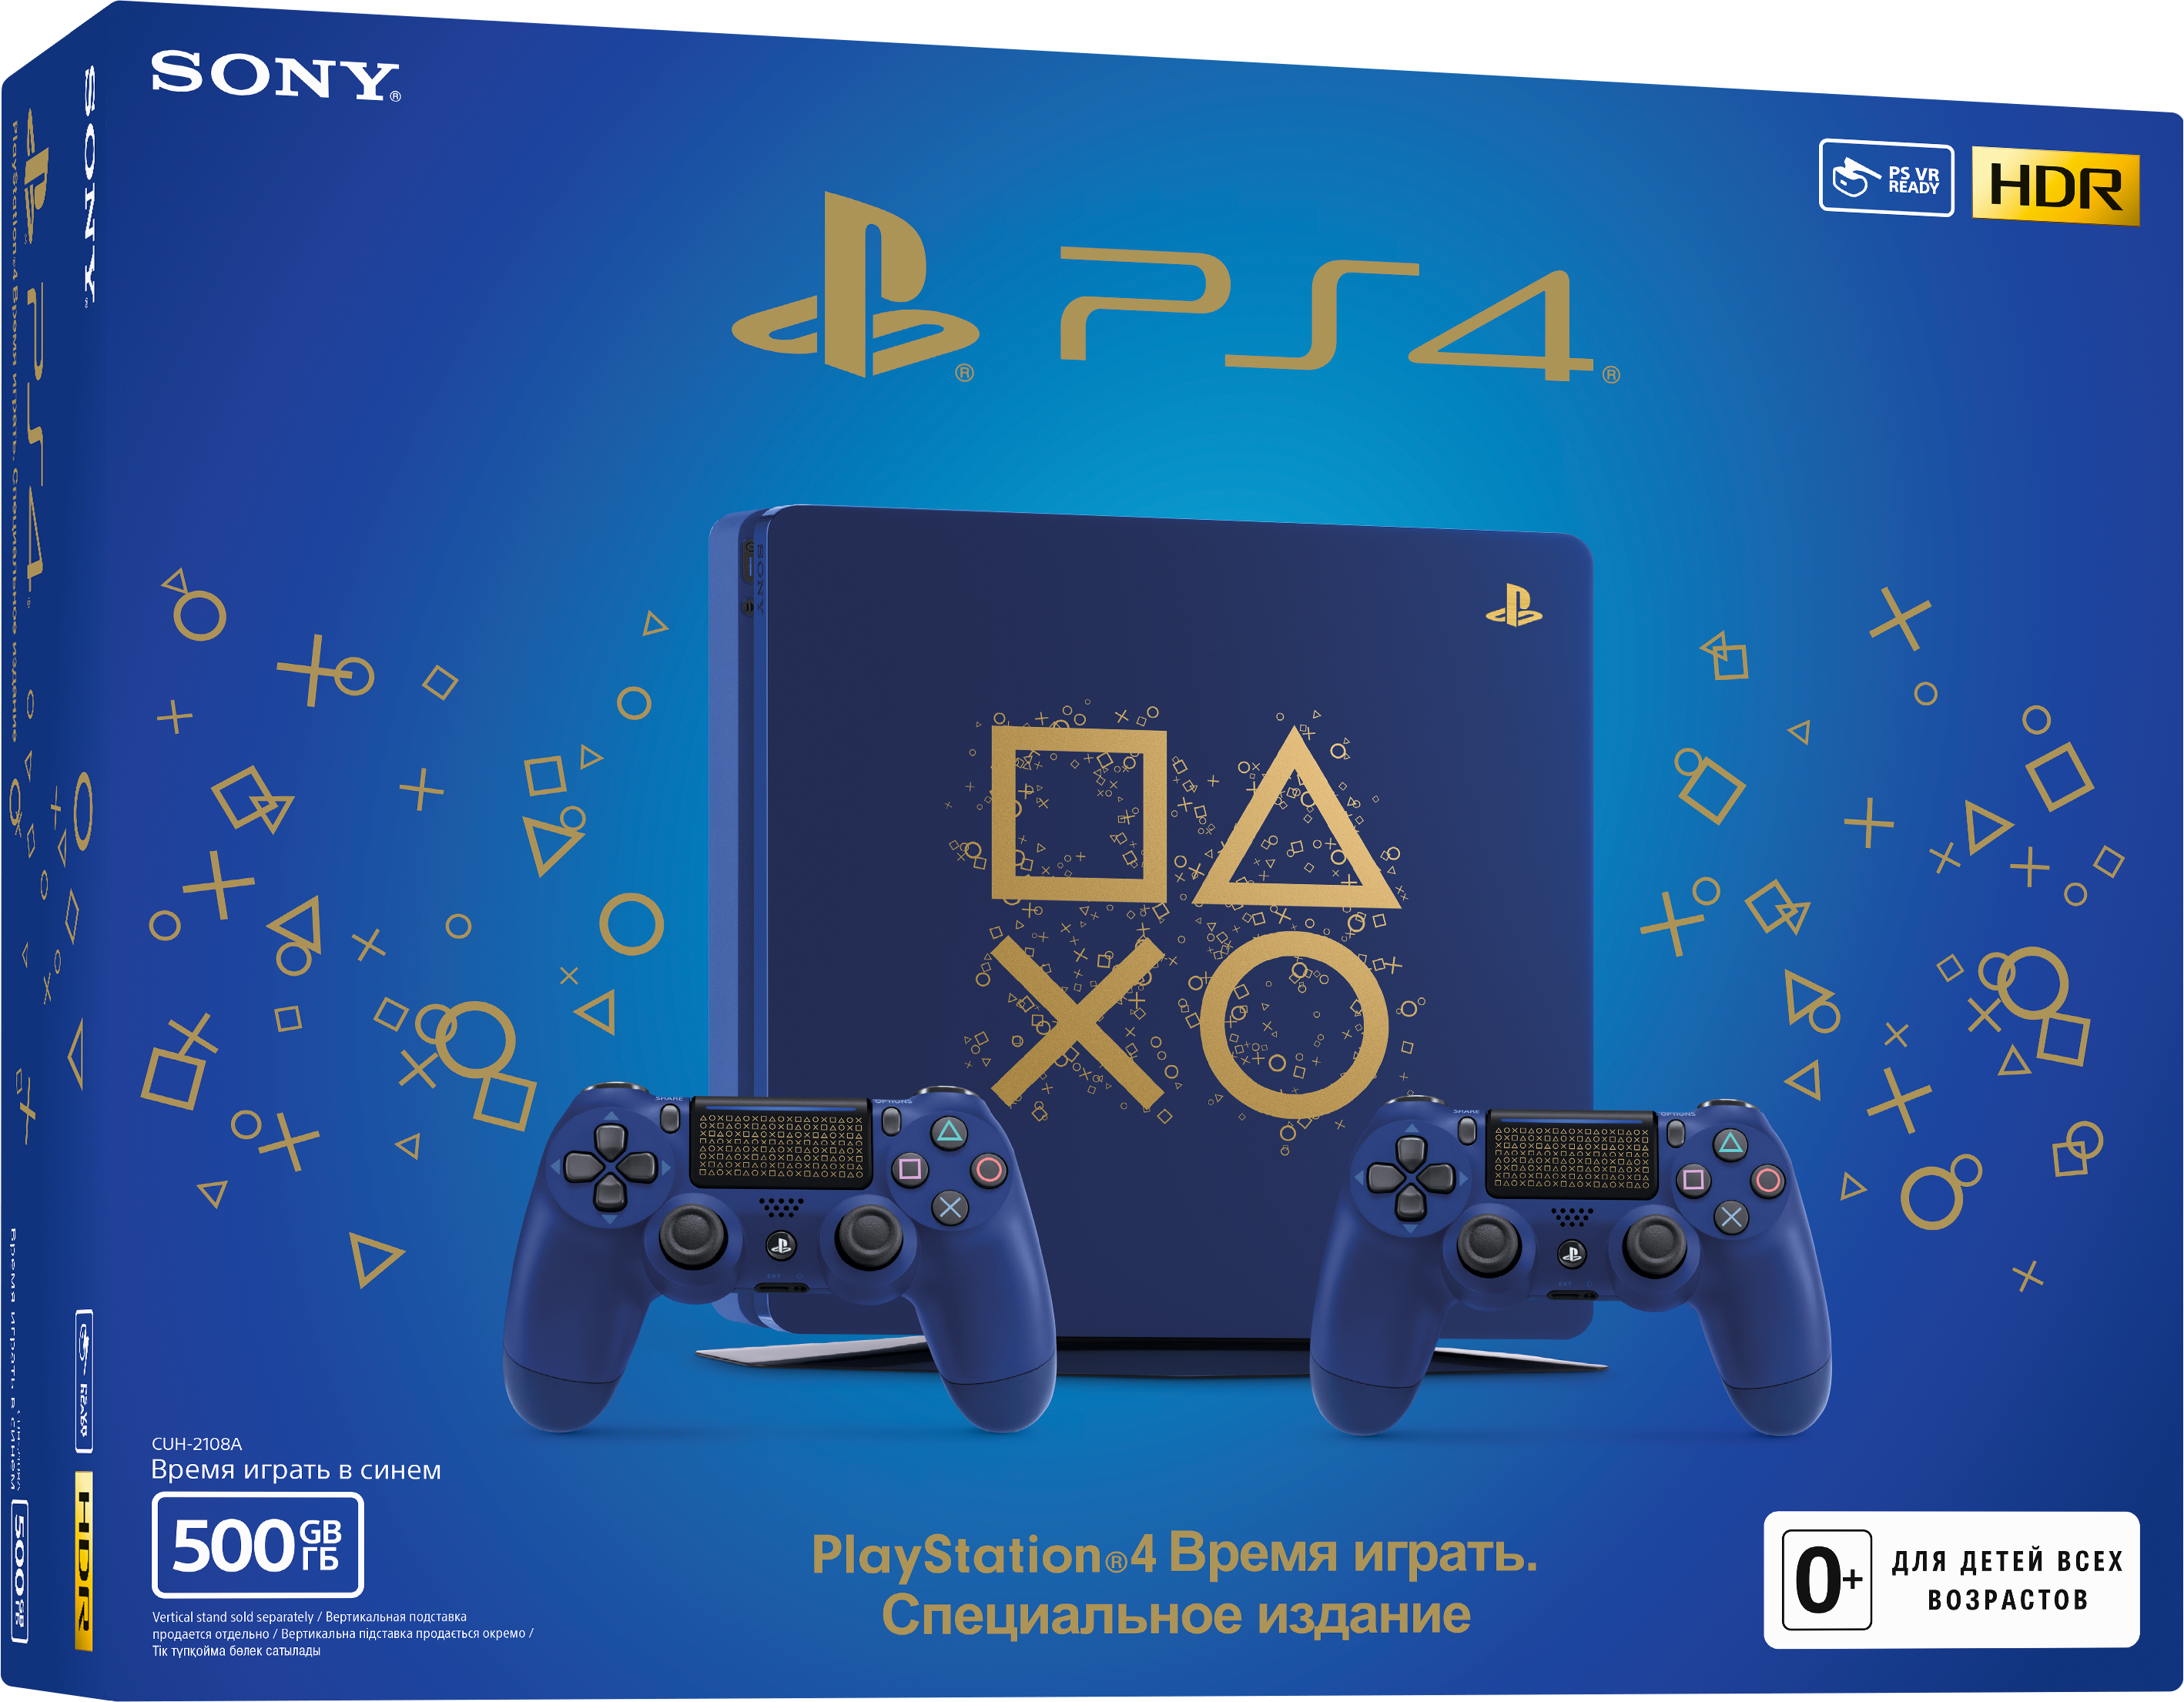 Игровая консоль Sony PlayStation 4: Days of Play Special Edition (500 GB) + контроллер DualShock 4 (CUH-2108A) игровая консоль sony playstation 4 slim с 1 тб памяти игрой gran turismo sport day one edition cuh 2008b limited edition черный белый page 8